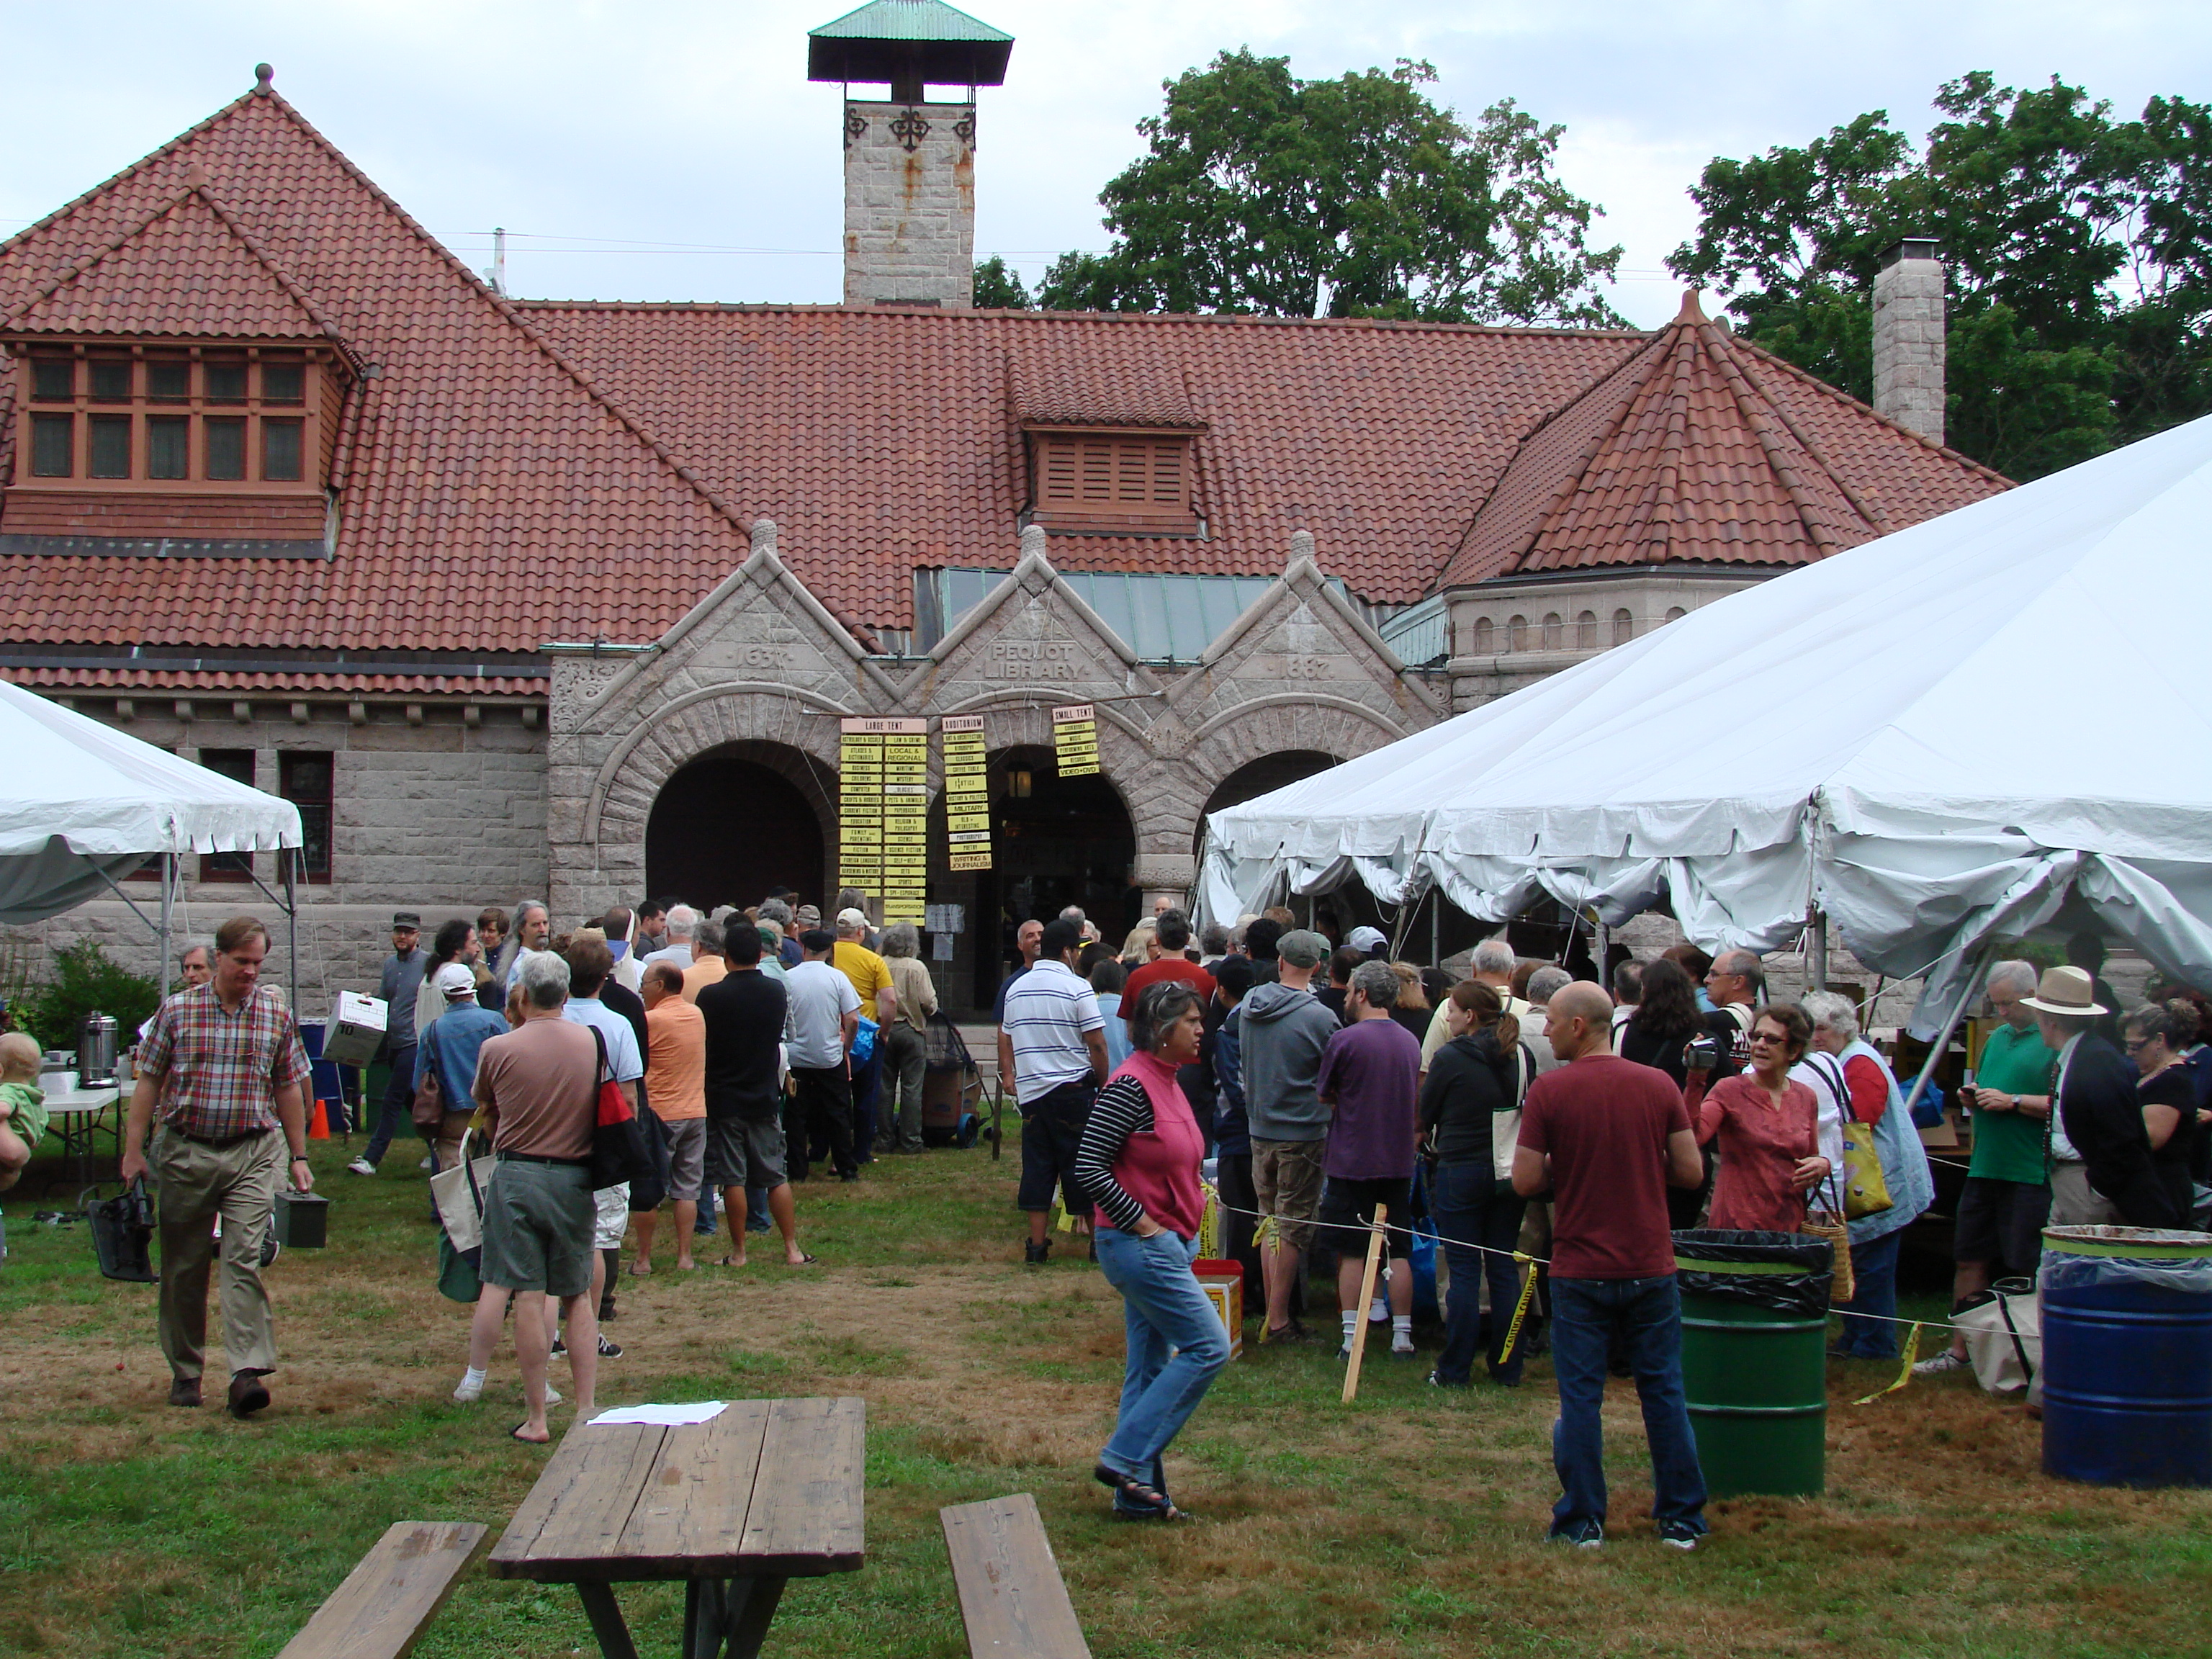 Pequot Library's 54th Annual Summer Book Sale starts Friday, July 25, and runs through Tuesday, July 29.